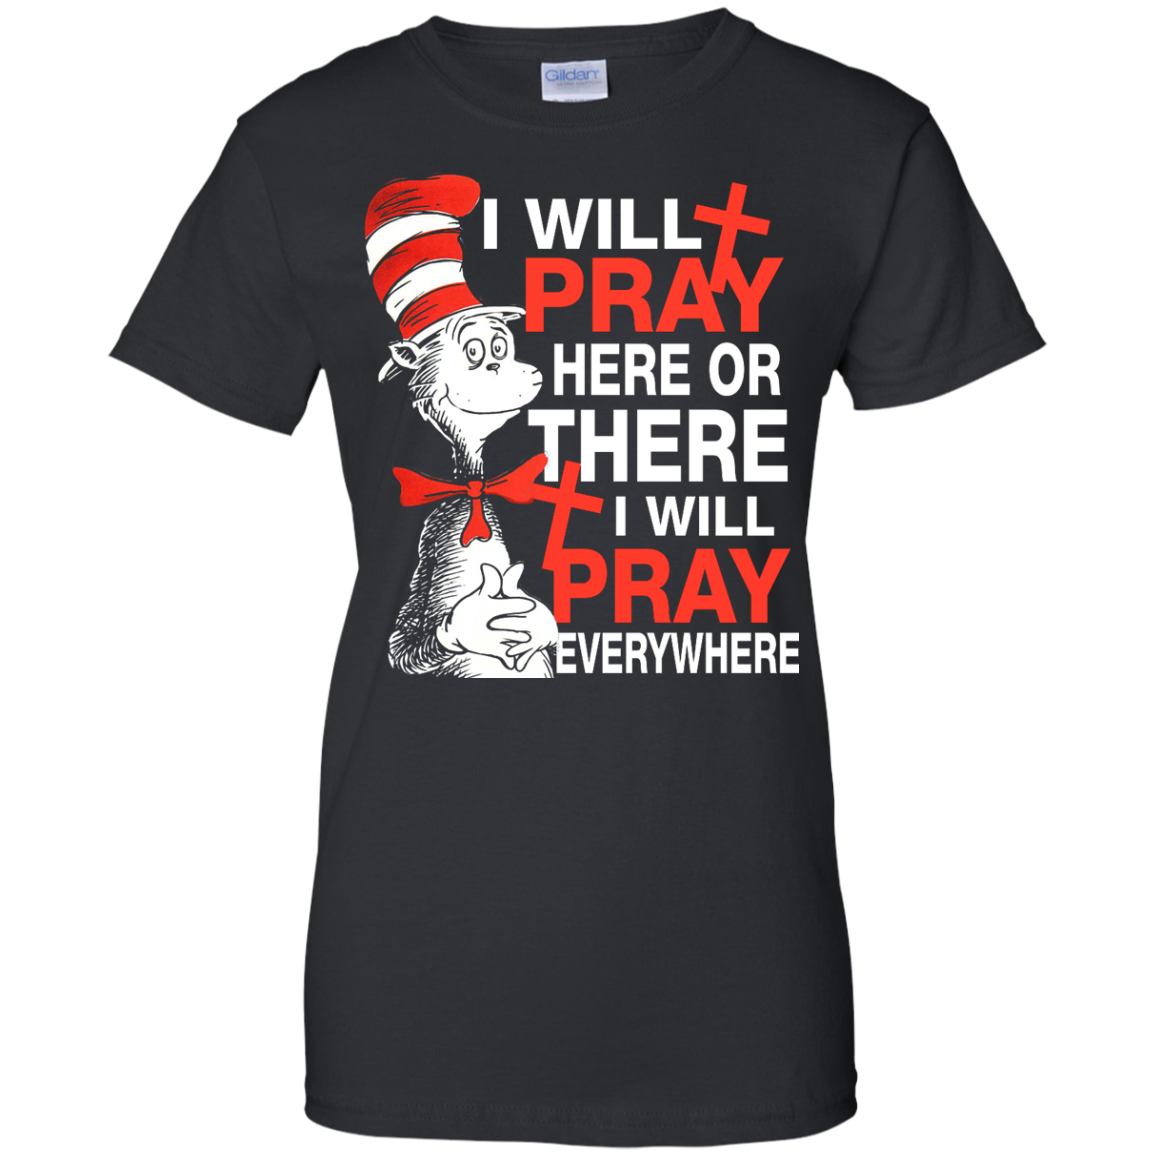 Dr. Seuss: I Will Pray Here Or There I Will Pray Everywhere Ladies' T-Shirt